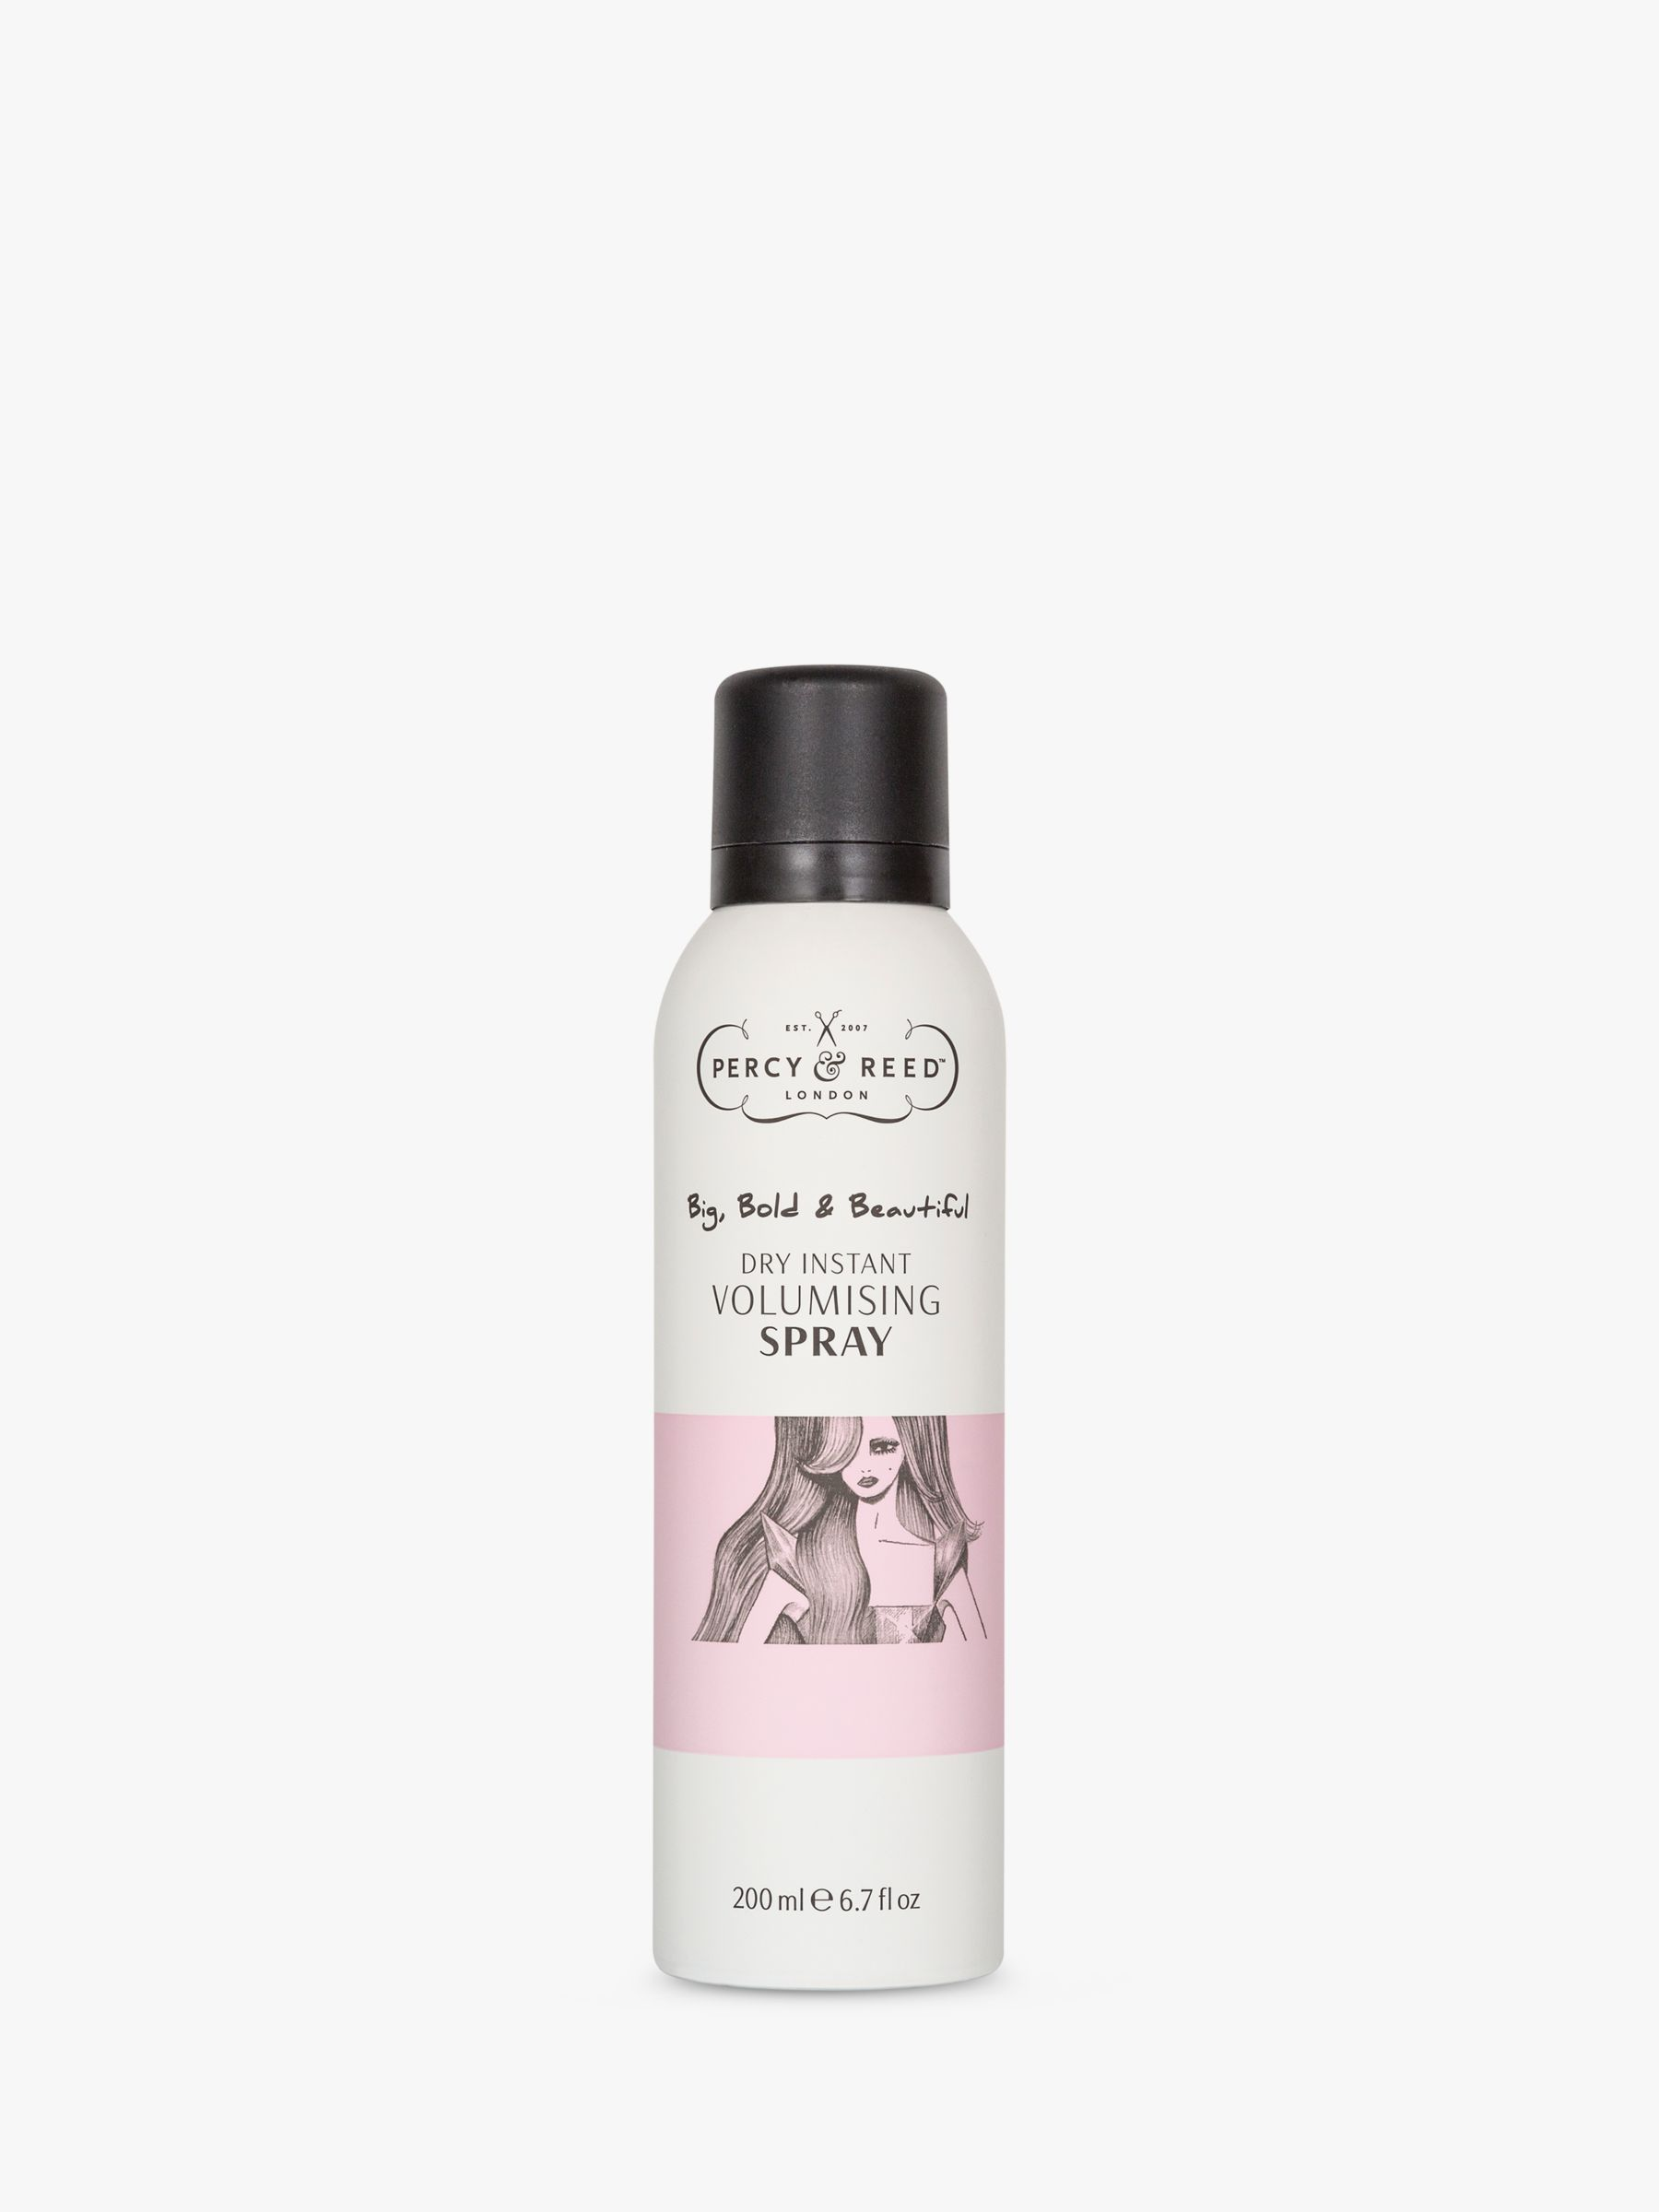 Percy & Reed Percy & Reed Big, Bold & Beautiful Dry Instant Volumising Spray, 200ml